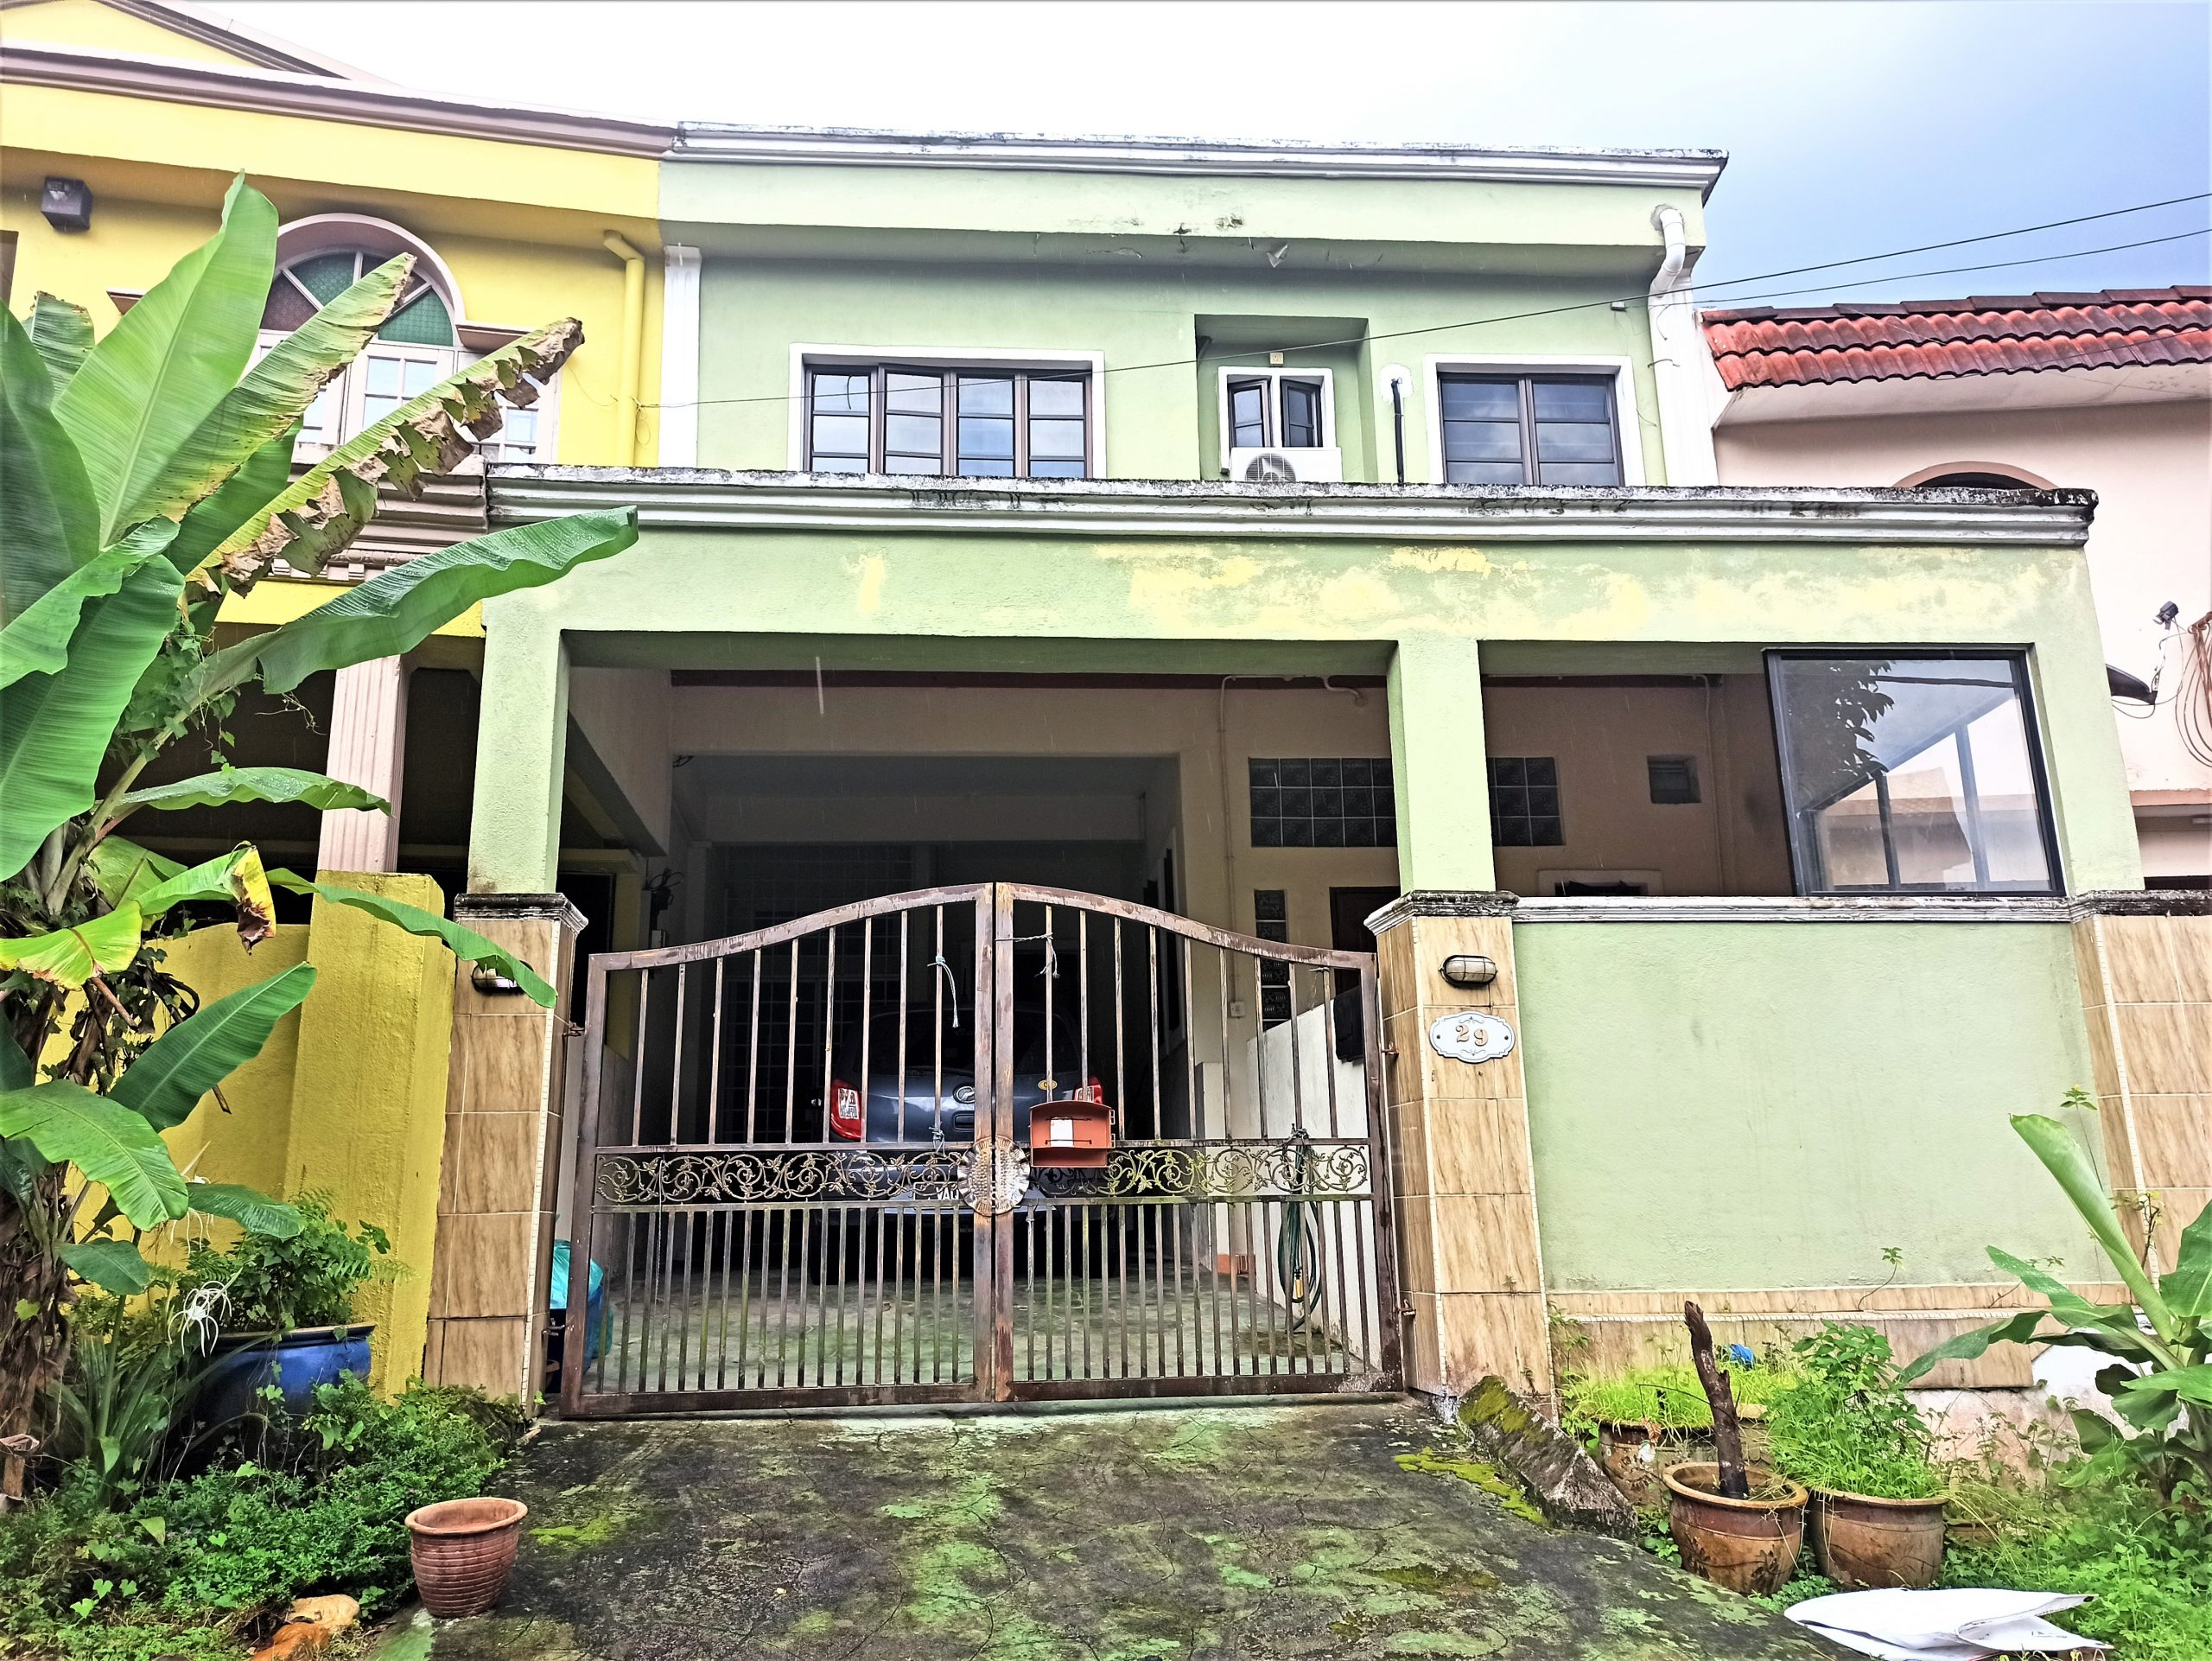 RENOVATED EXTENDED Double Storey House Taman Zooview Ampang Selangor